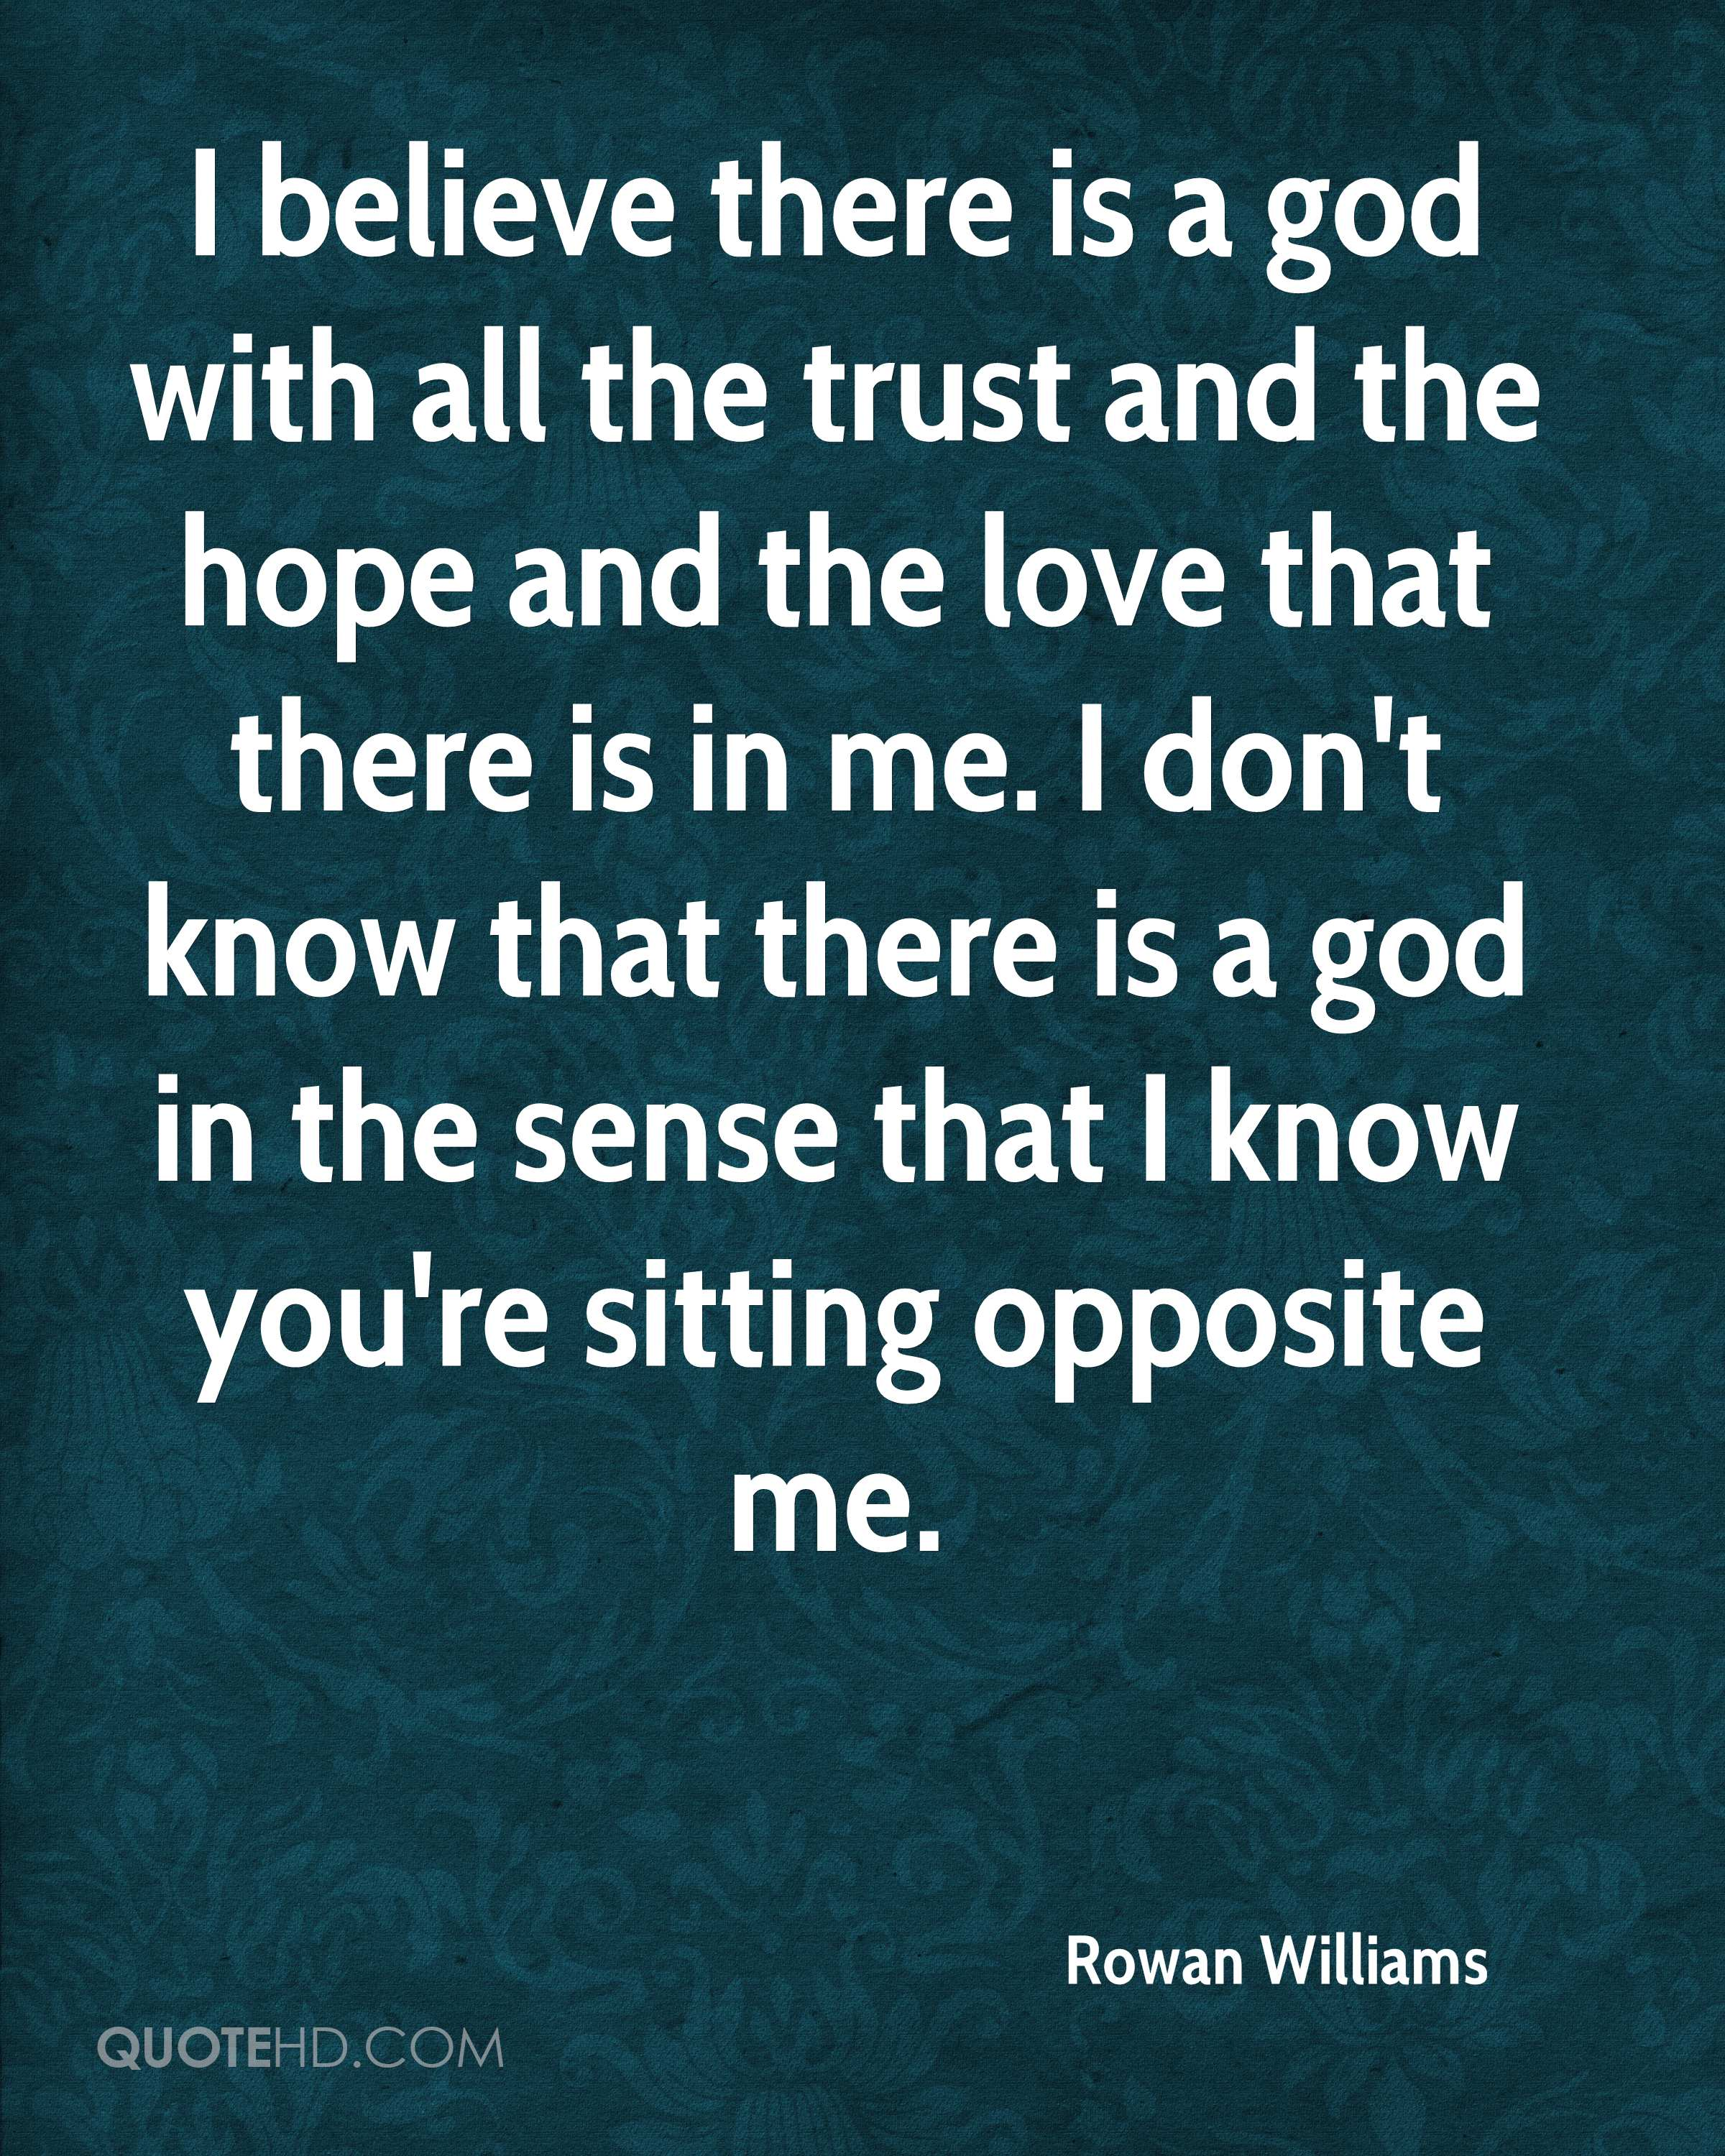 I believe there is a god with all the trust and the hope and the love